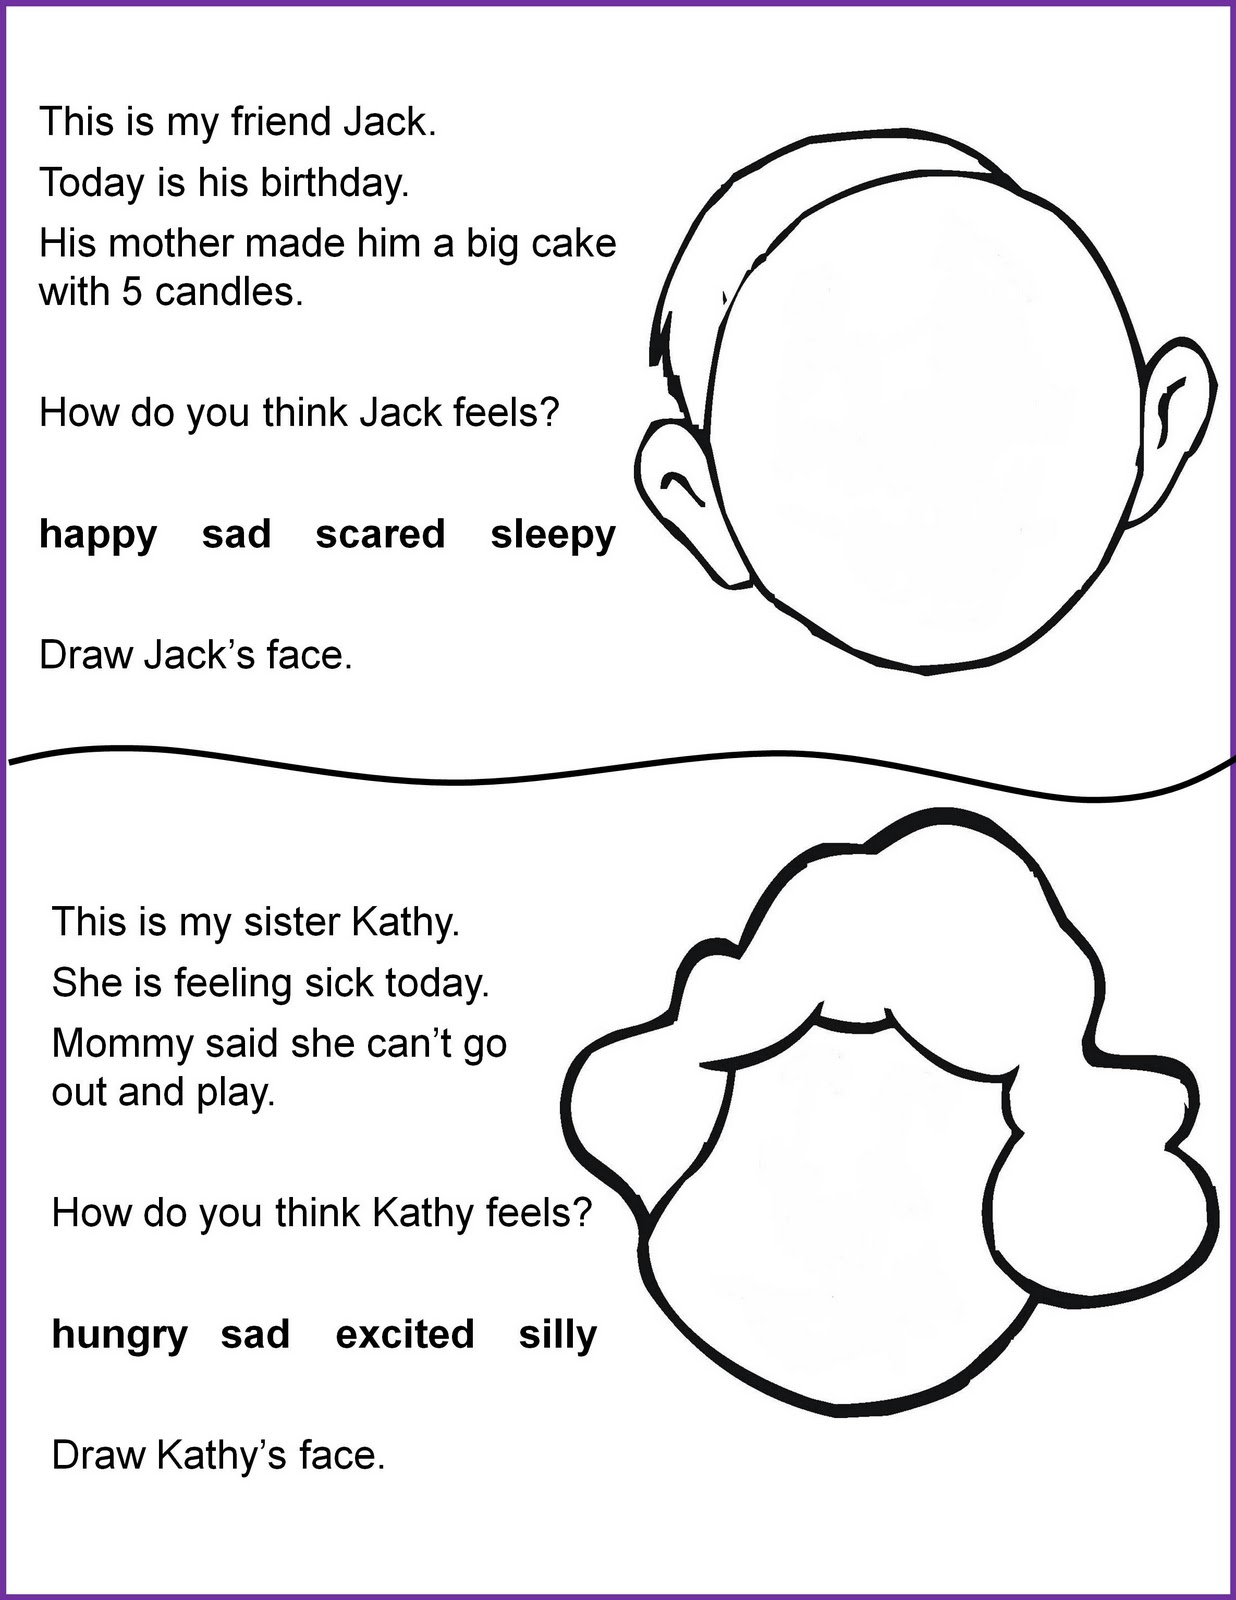 Worksheets Free Following Directions Worksheets worksheet following direction worksheets mytourvn directions free kindergarten learning printable